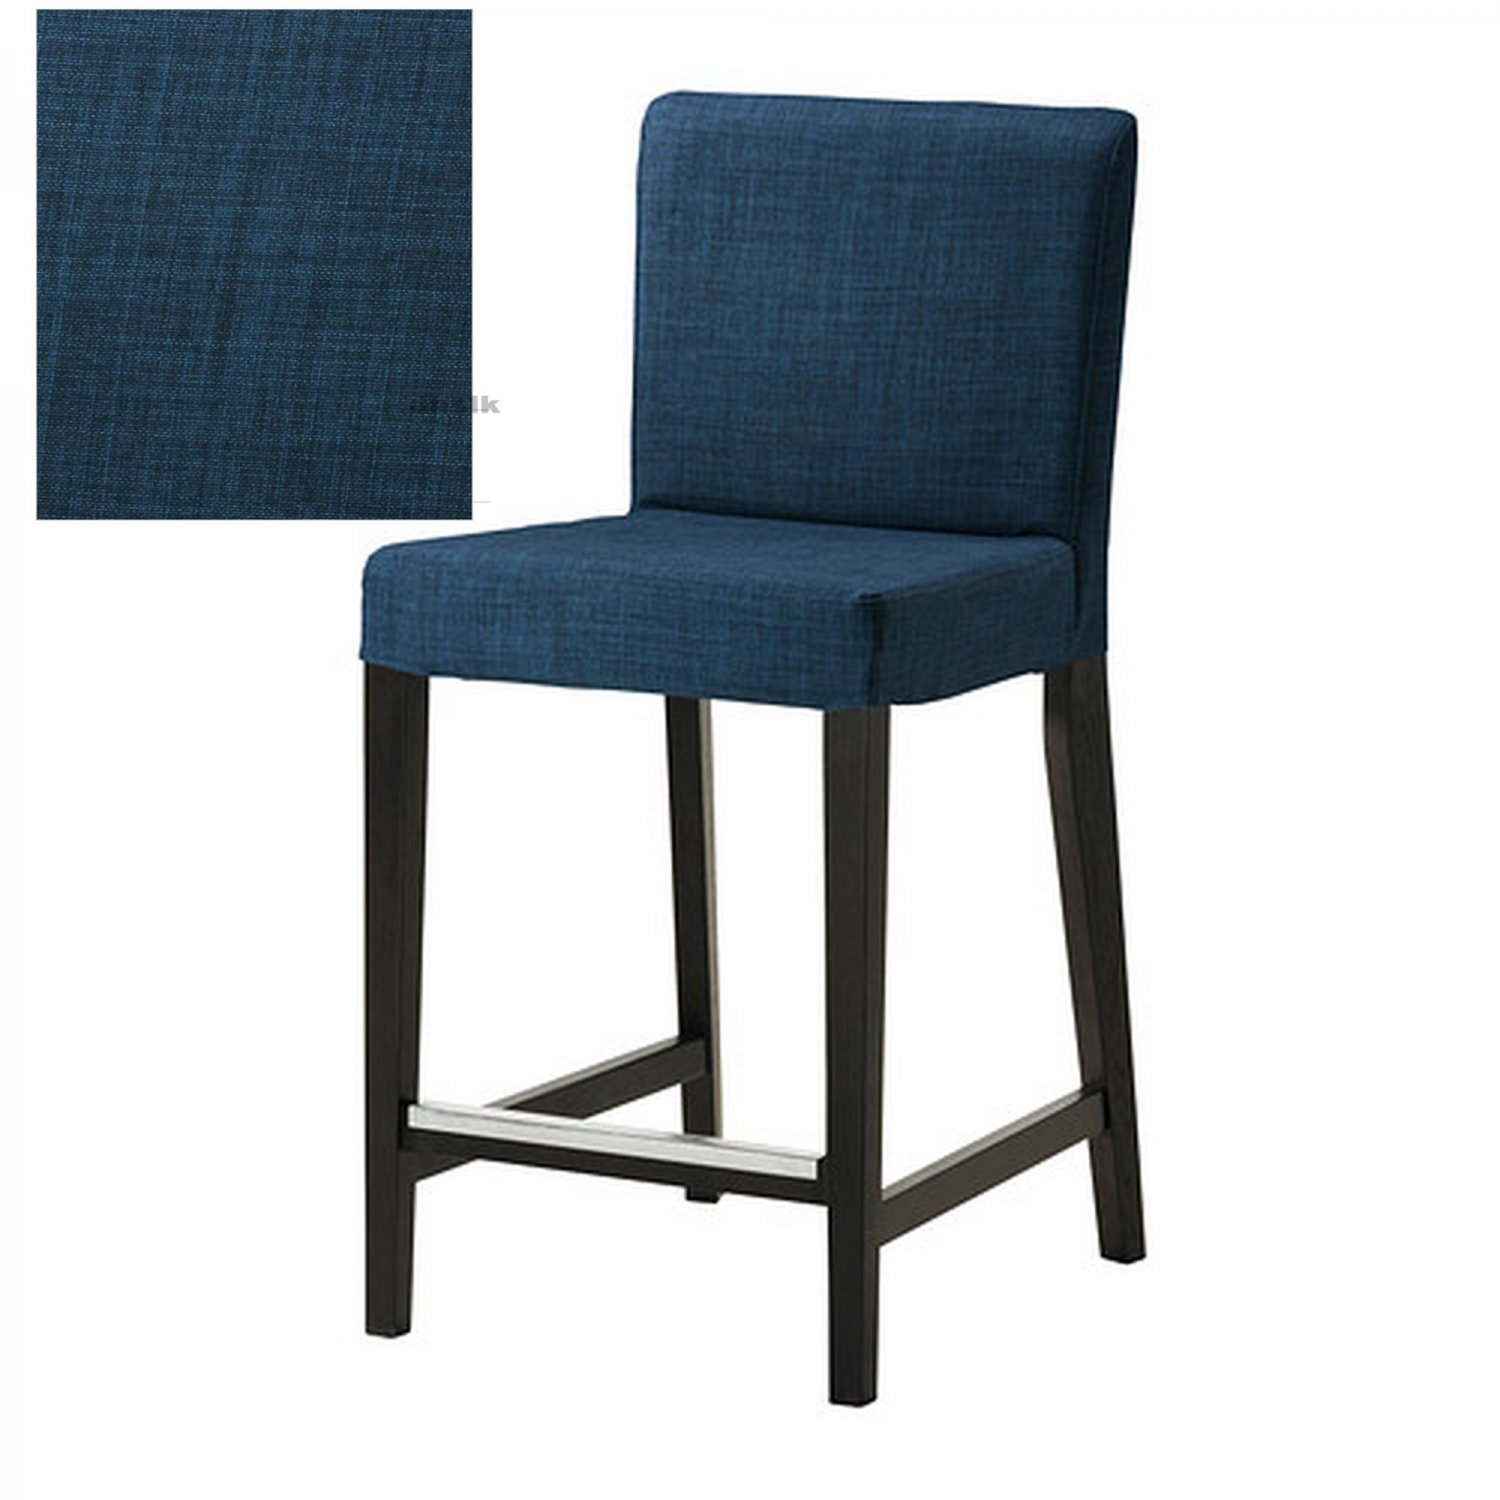 bar stool chair rung protectors tall dining table and chairs ikea henriksdal skiftebo slipcover barstool